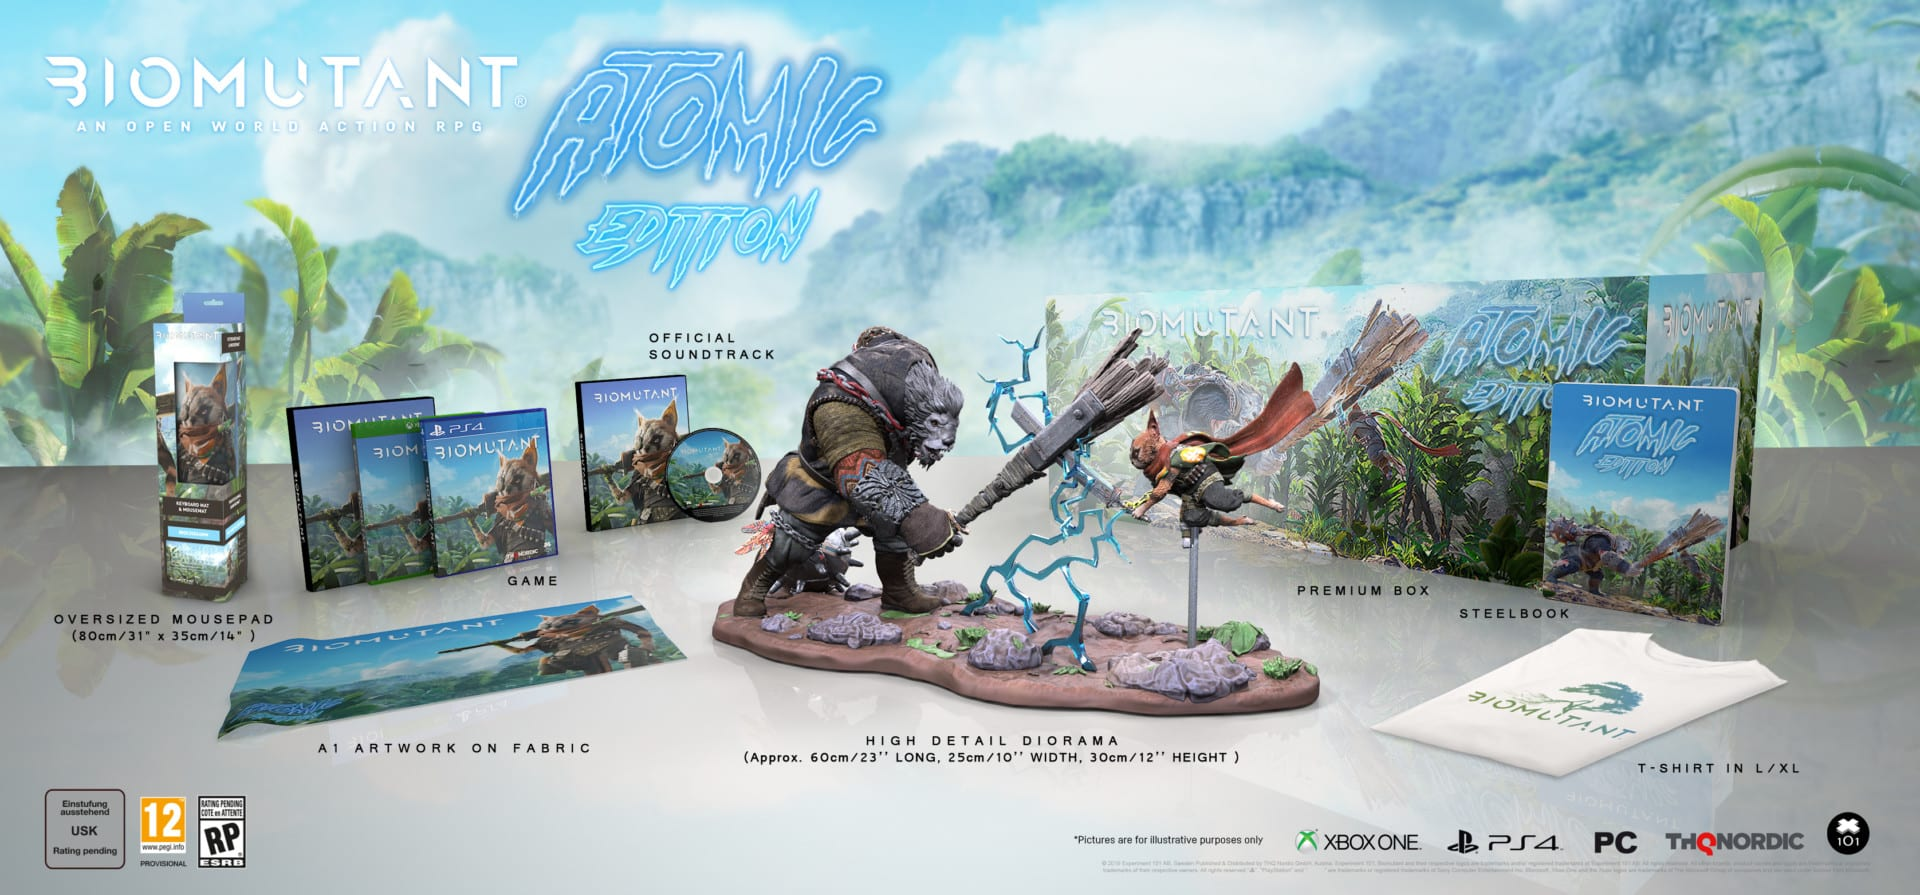 THQ Nordic Biomutant Atomic Edition collector's edition